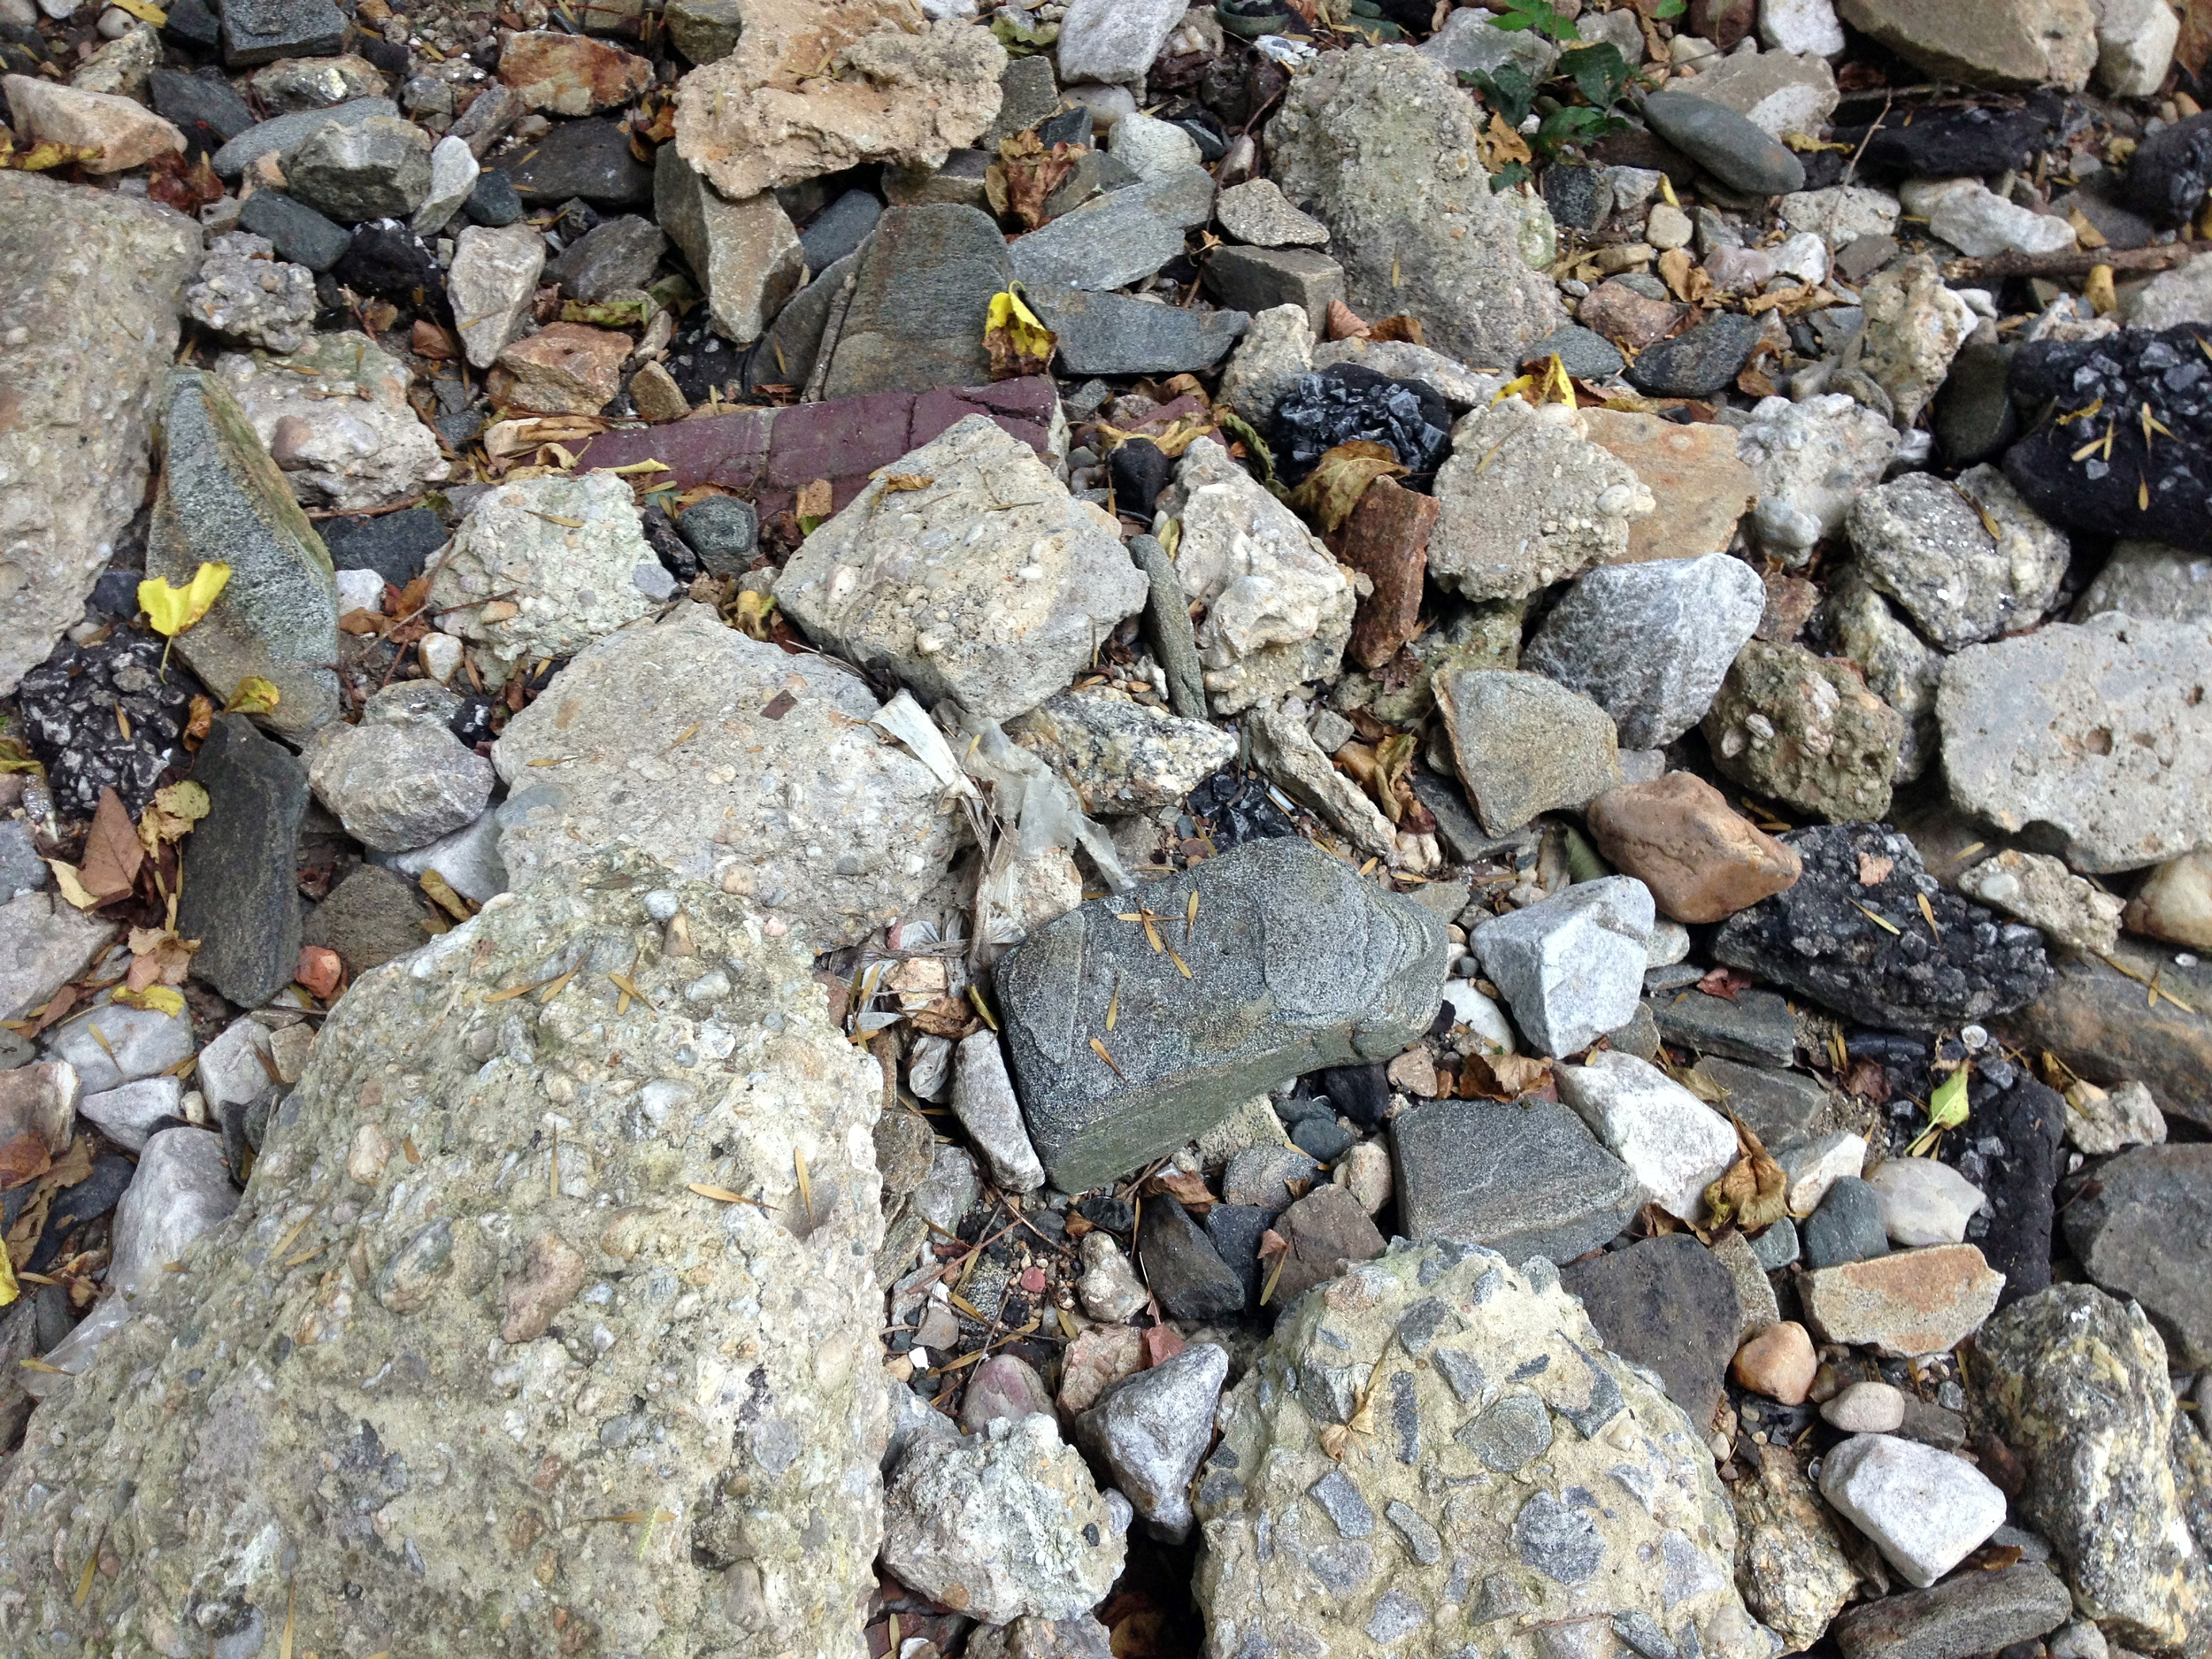 Geological sample of the beach. Not including trash, quite a diverse array.